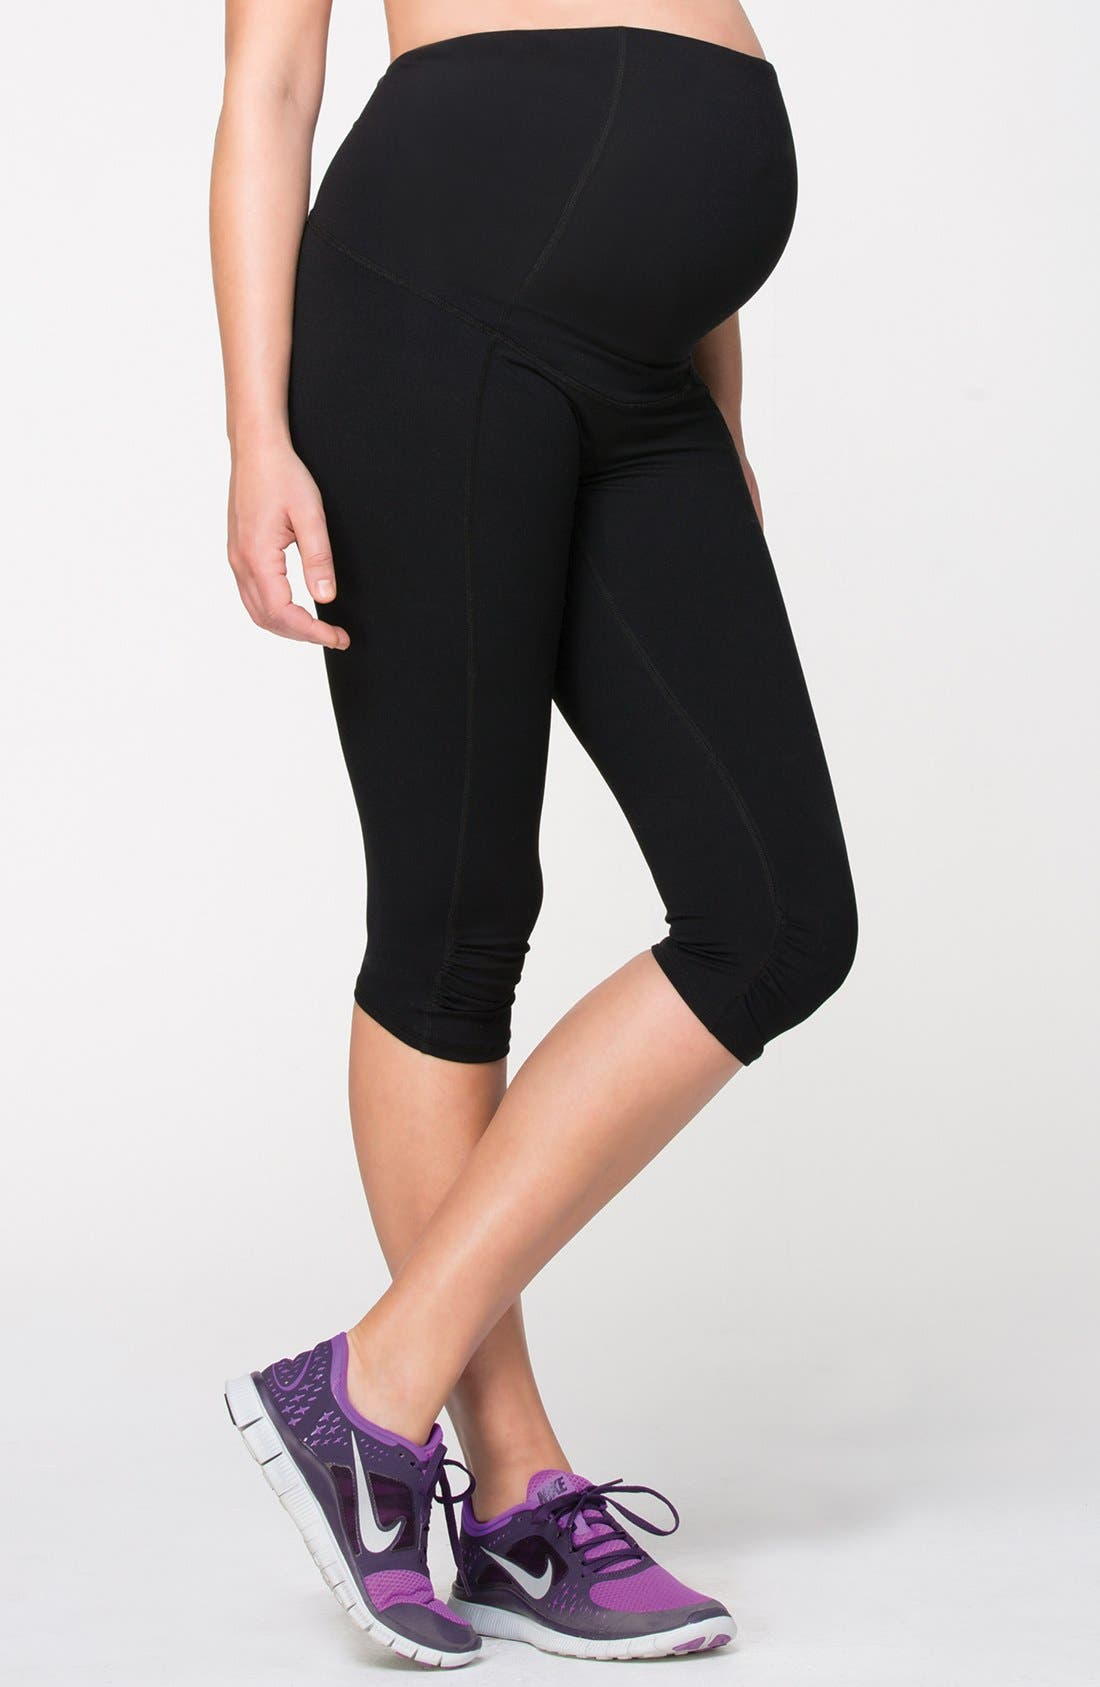 Alternate Image 1 Selected - Ingrid & Isabel® Knee Length Active Maternity Pants with Crossover Panel